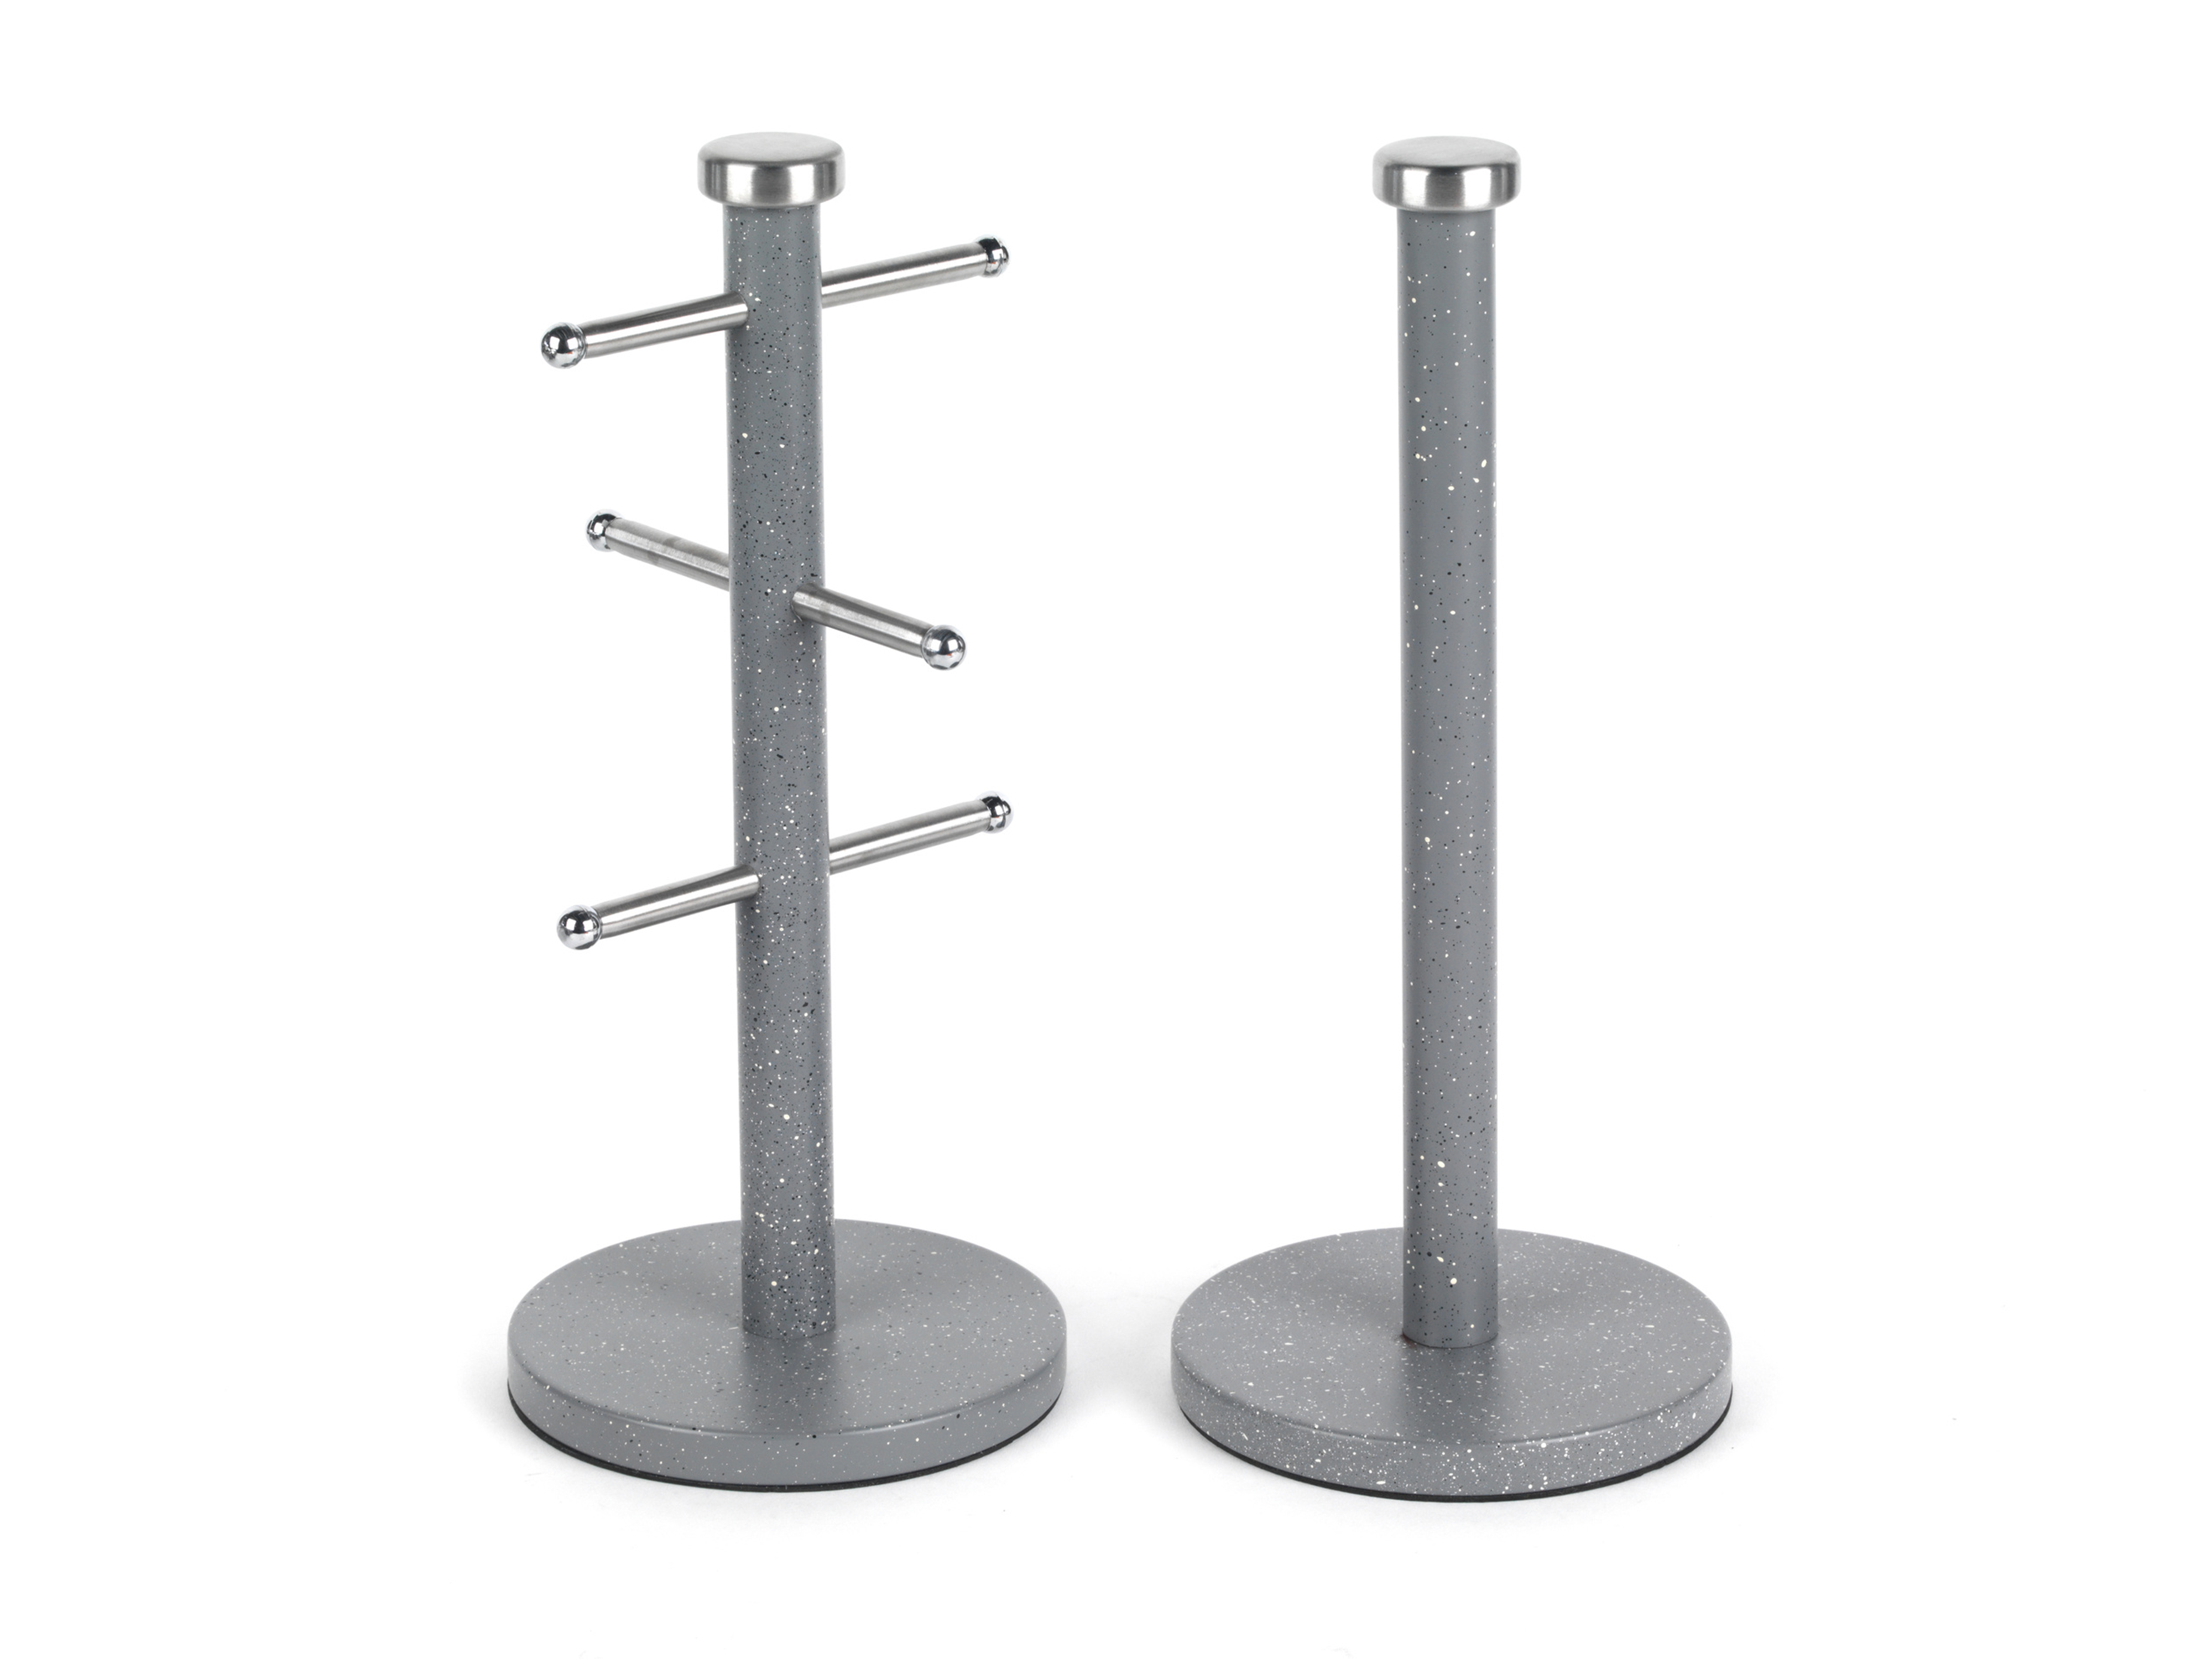 Salter Marble Collection 2 Piece Countertop Set Mug Tree And Paper Towel Holder Grey